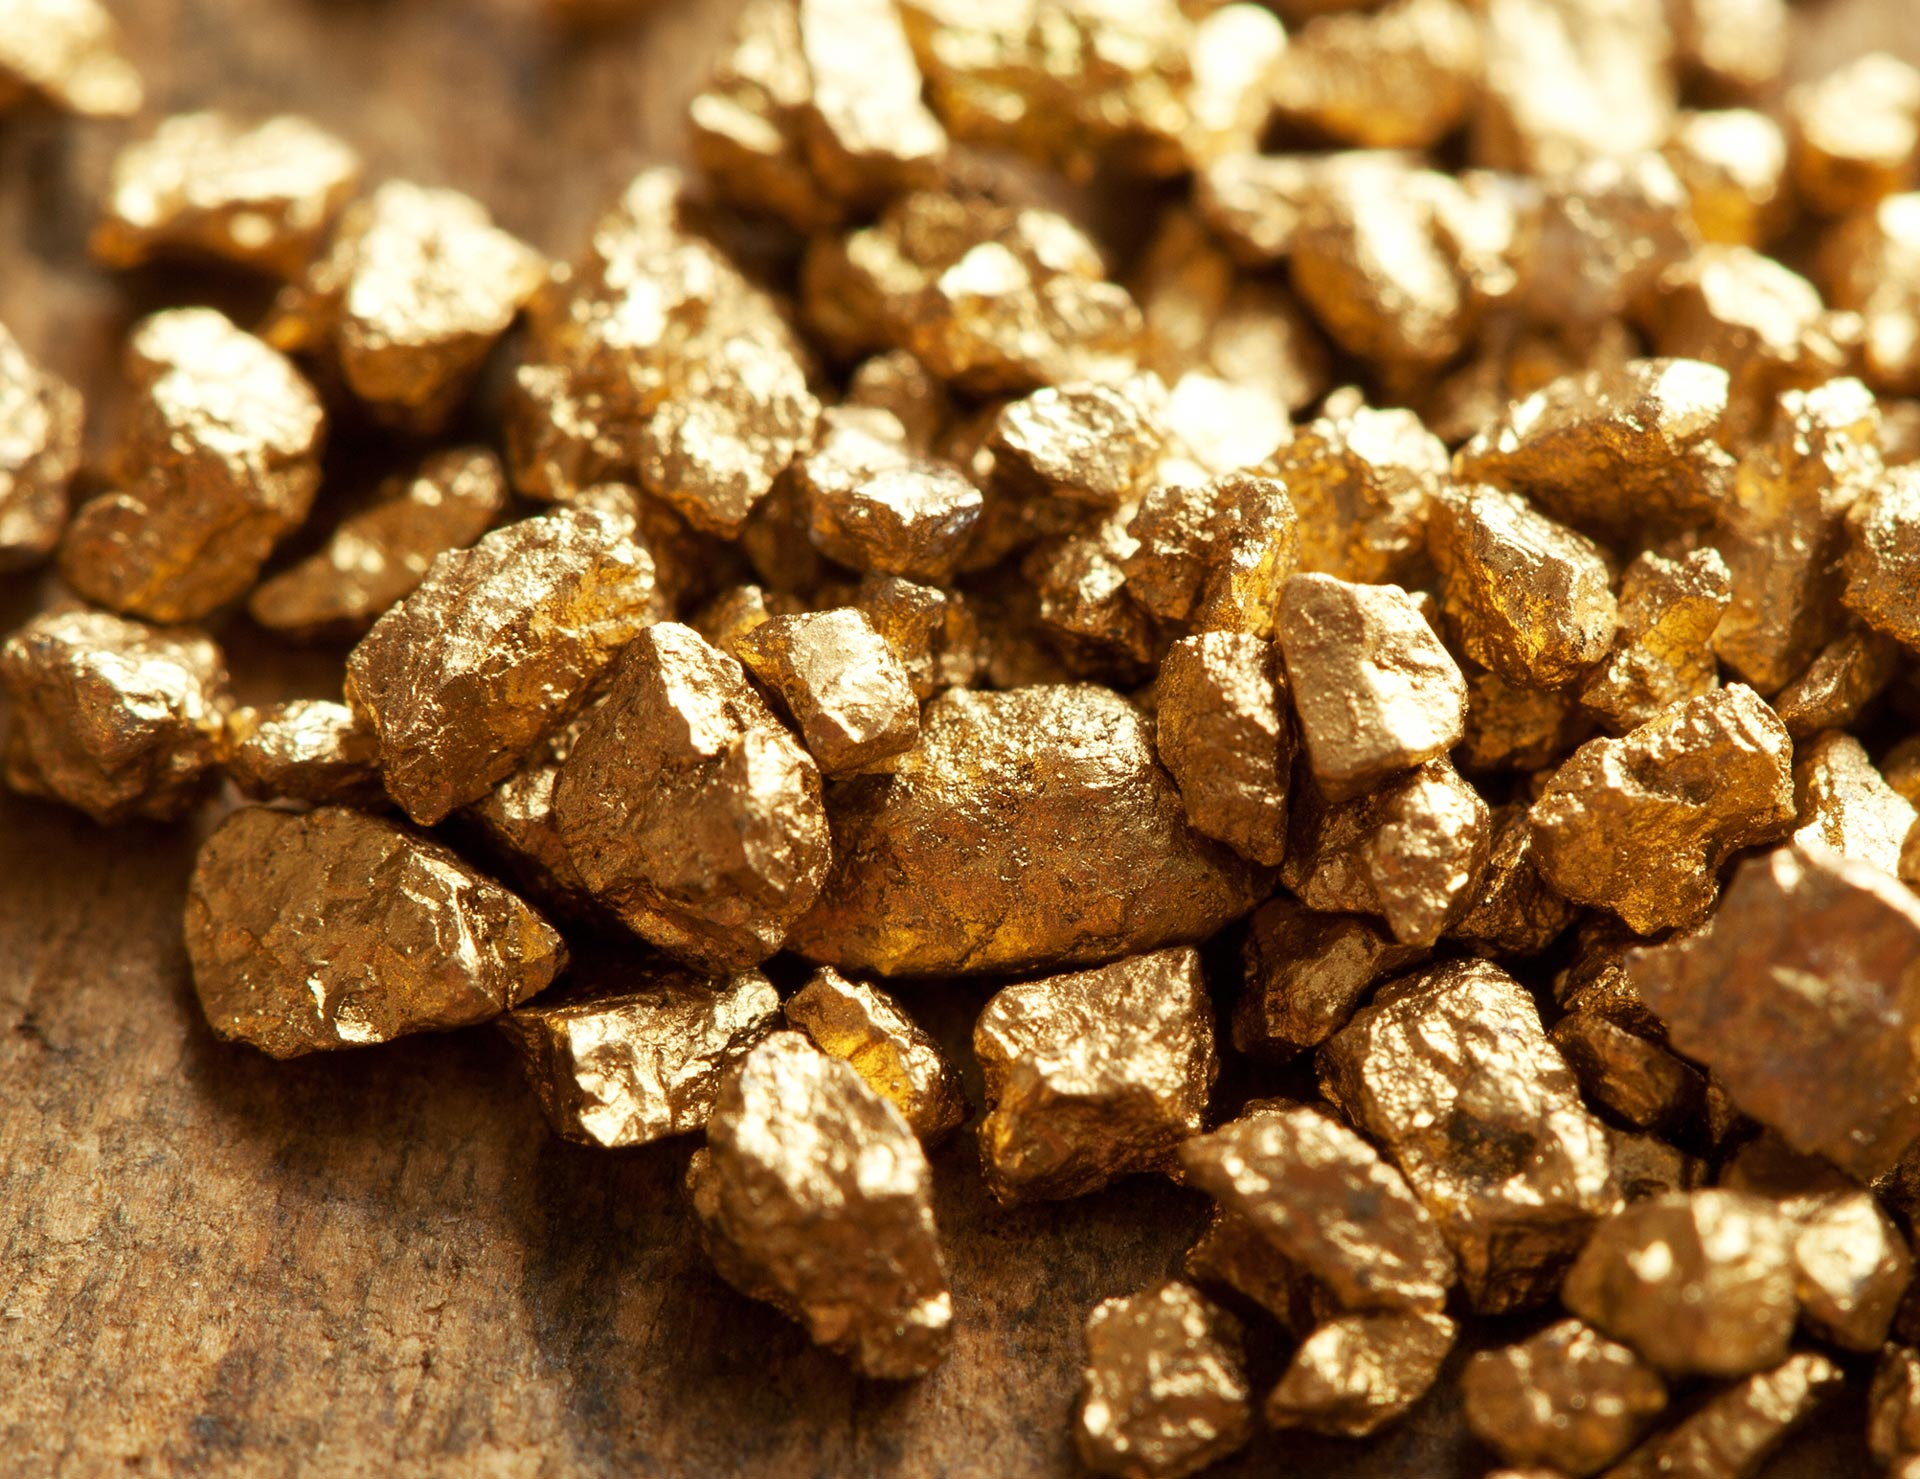 Blockchain gold: Gold-backed digital currency announces $120bn addition